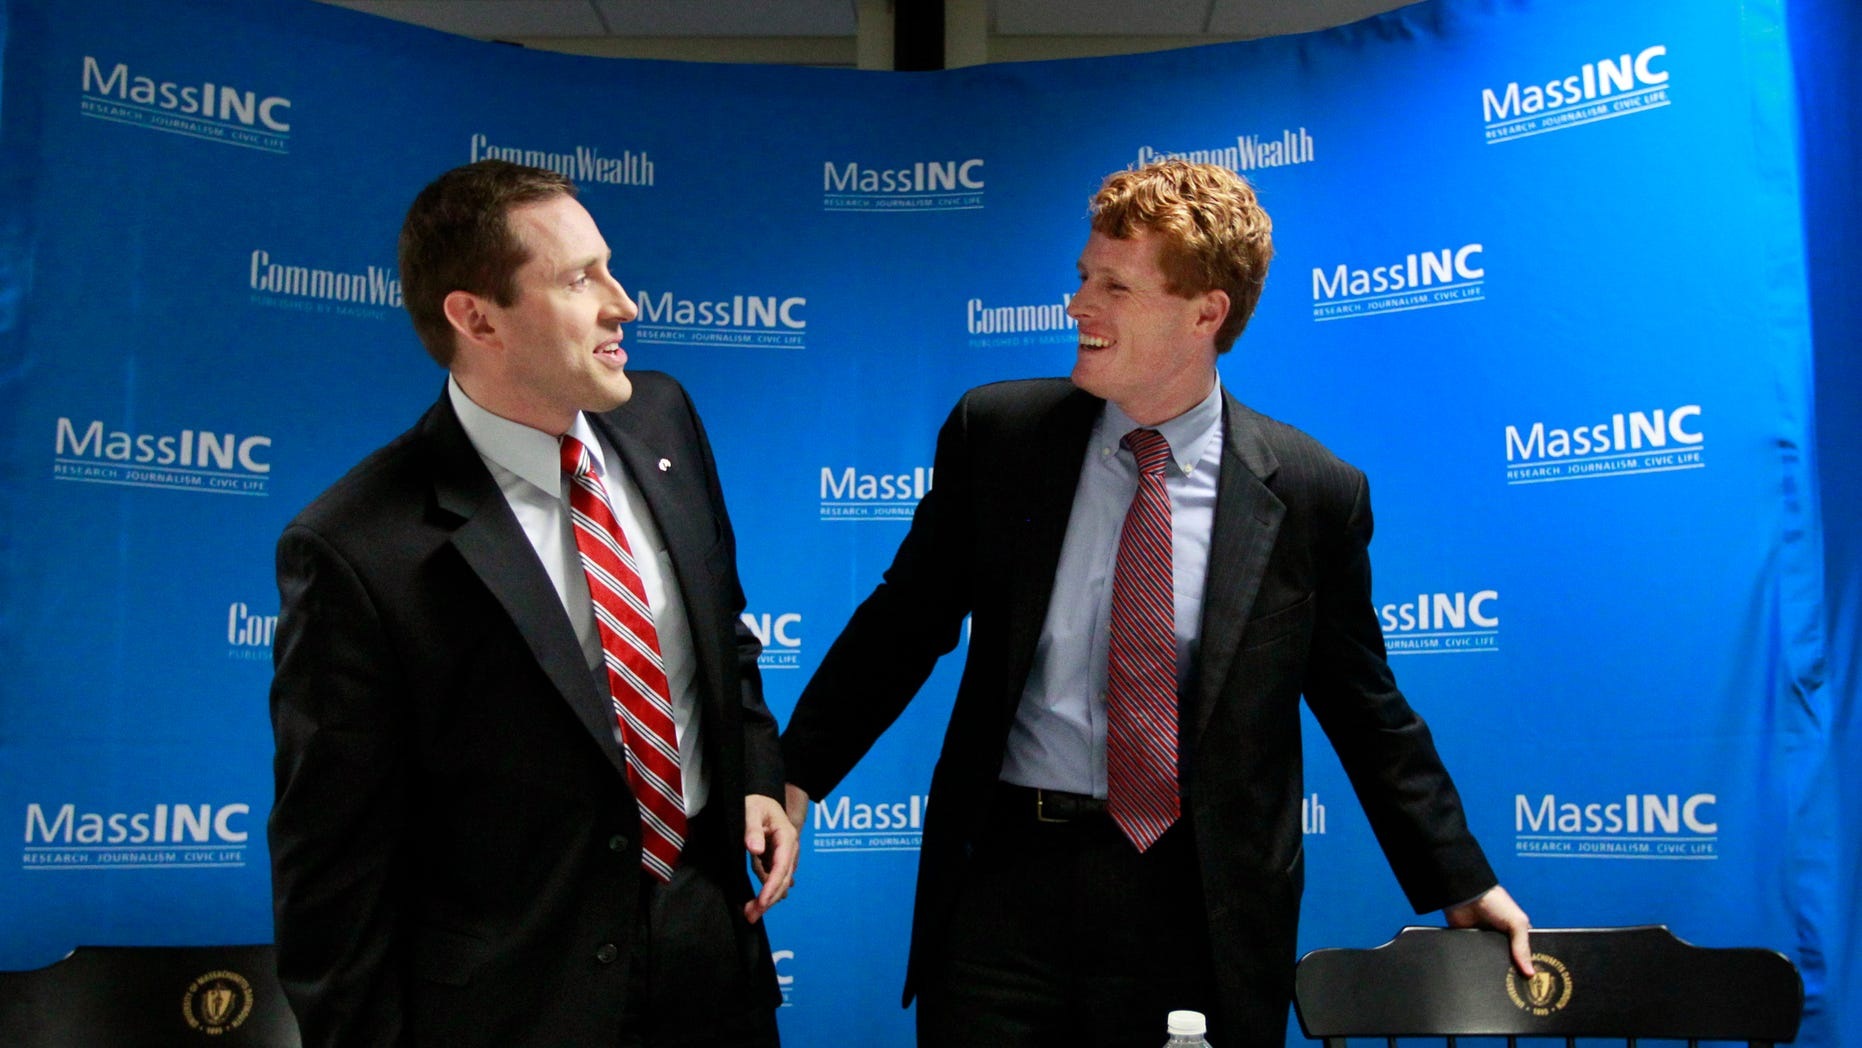 Wednesday, Oct. 10, 2012: U.S. congressional candidates, Republican Sean Bielat, left, and Democrat Joseph Kennedy III, right, at a debate in Fall River, Mass.